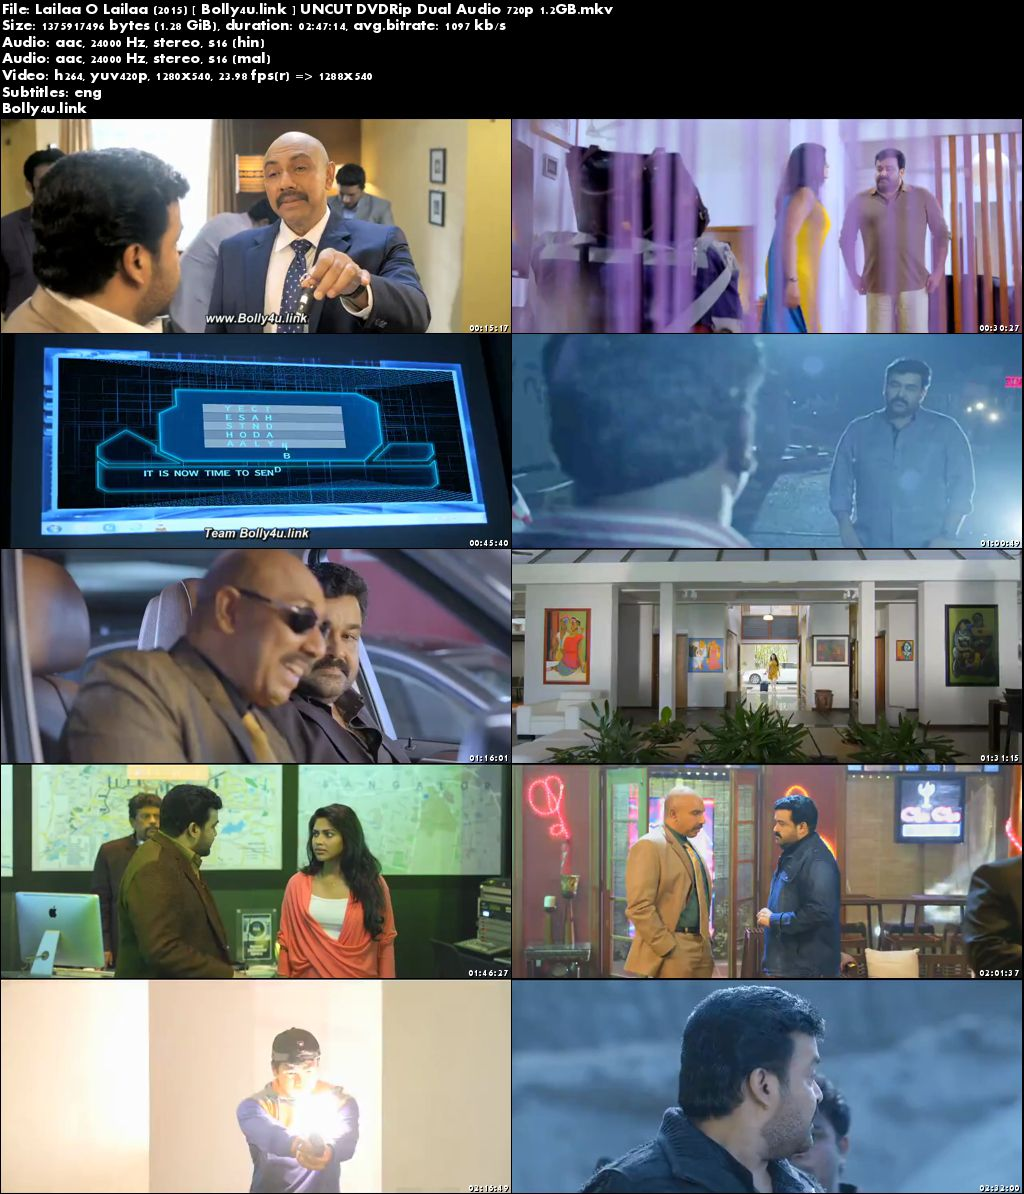 Lailaa O Lailaa 2015 DVDRip UNCUT Hindi Dual Audio 720p ESub Download